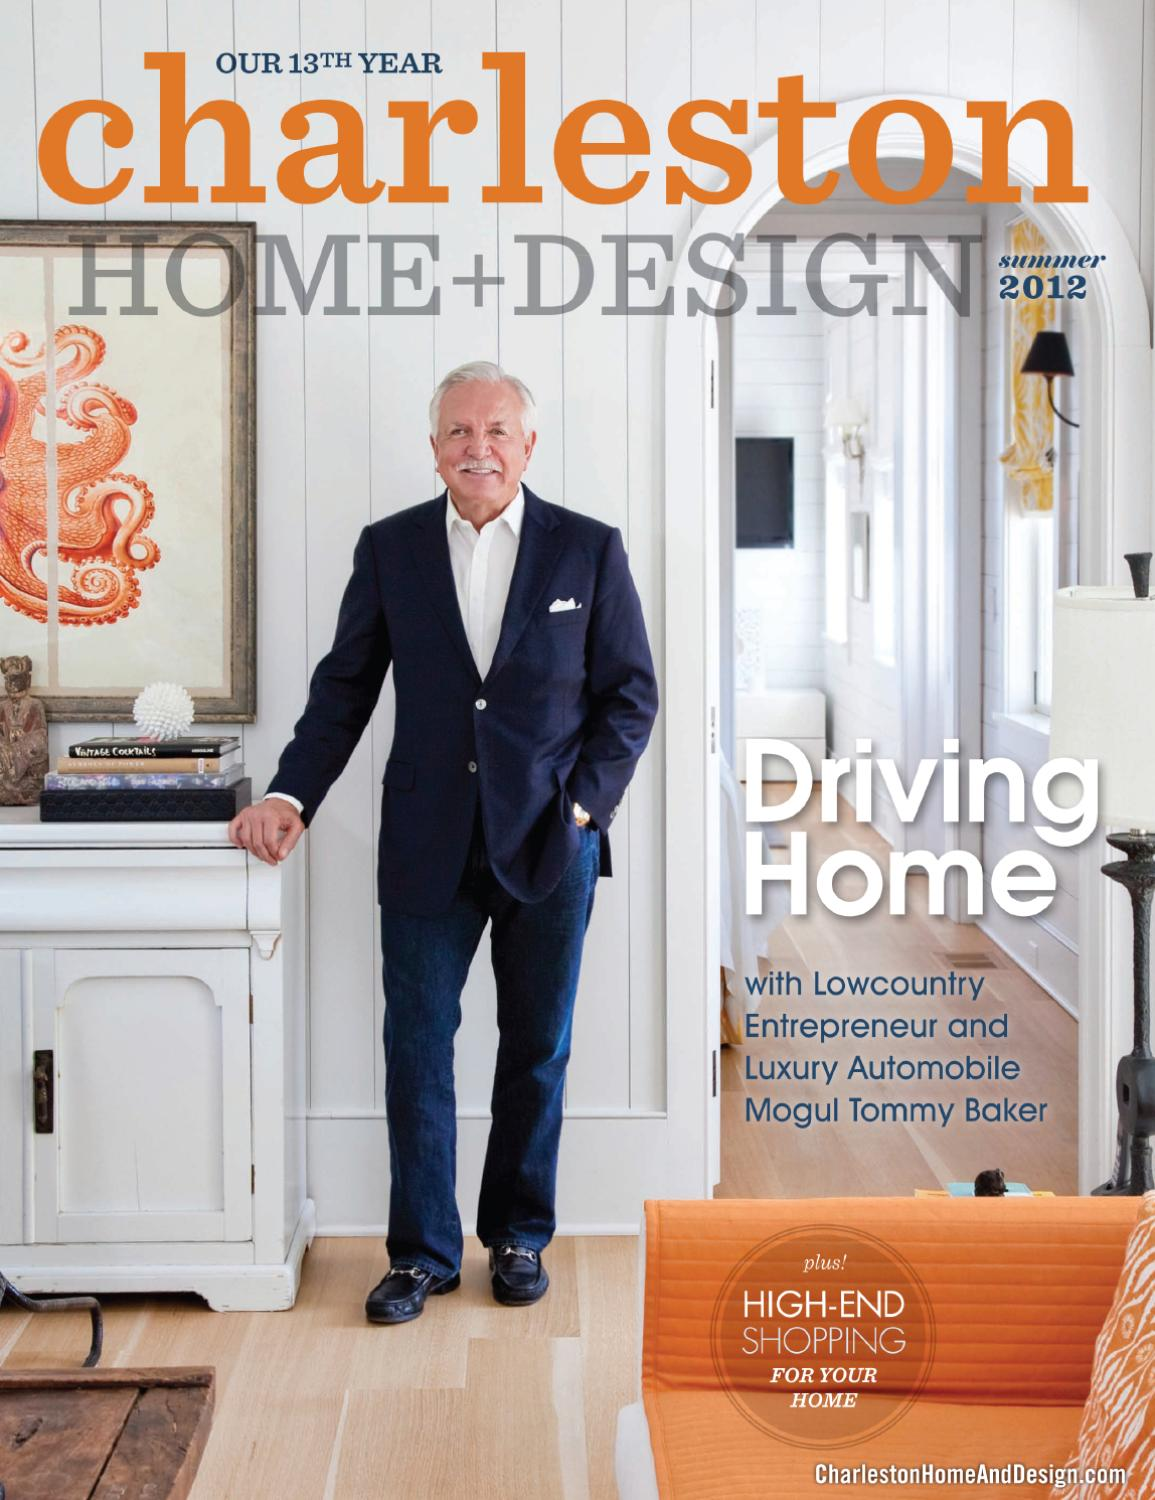 Home Design Magazine charleston home + design magazine - summer 2012charleston home